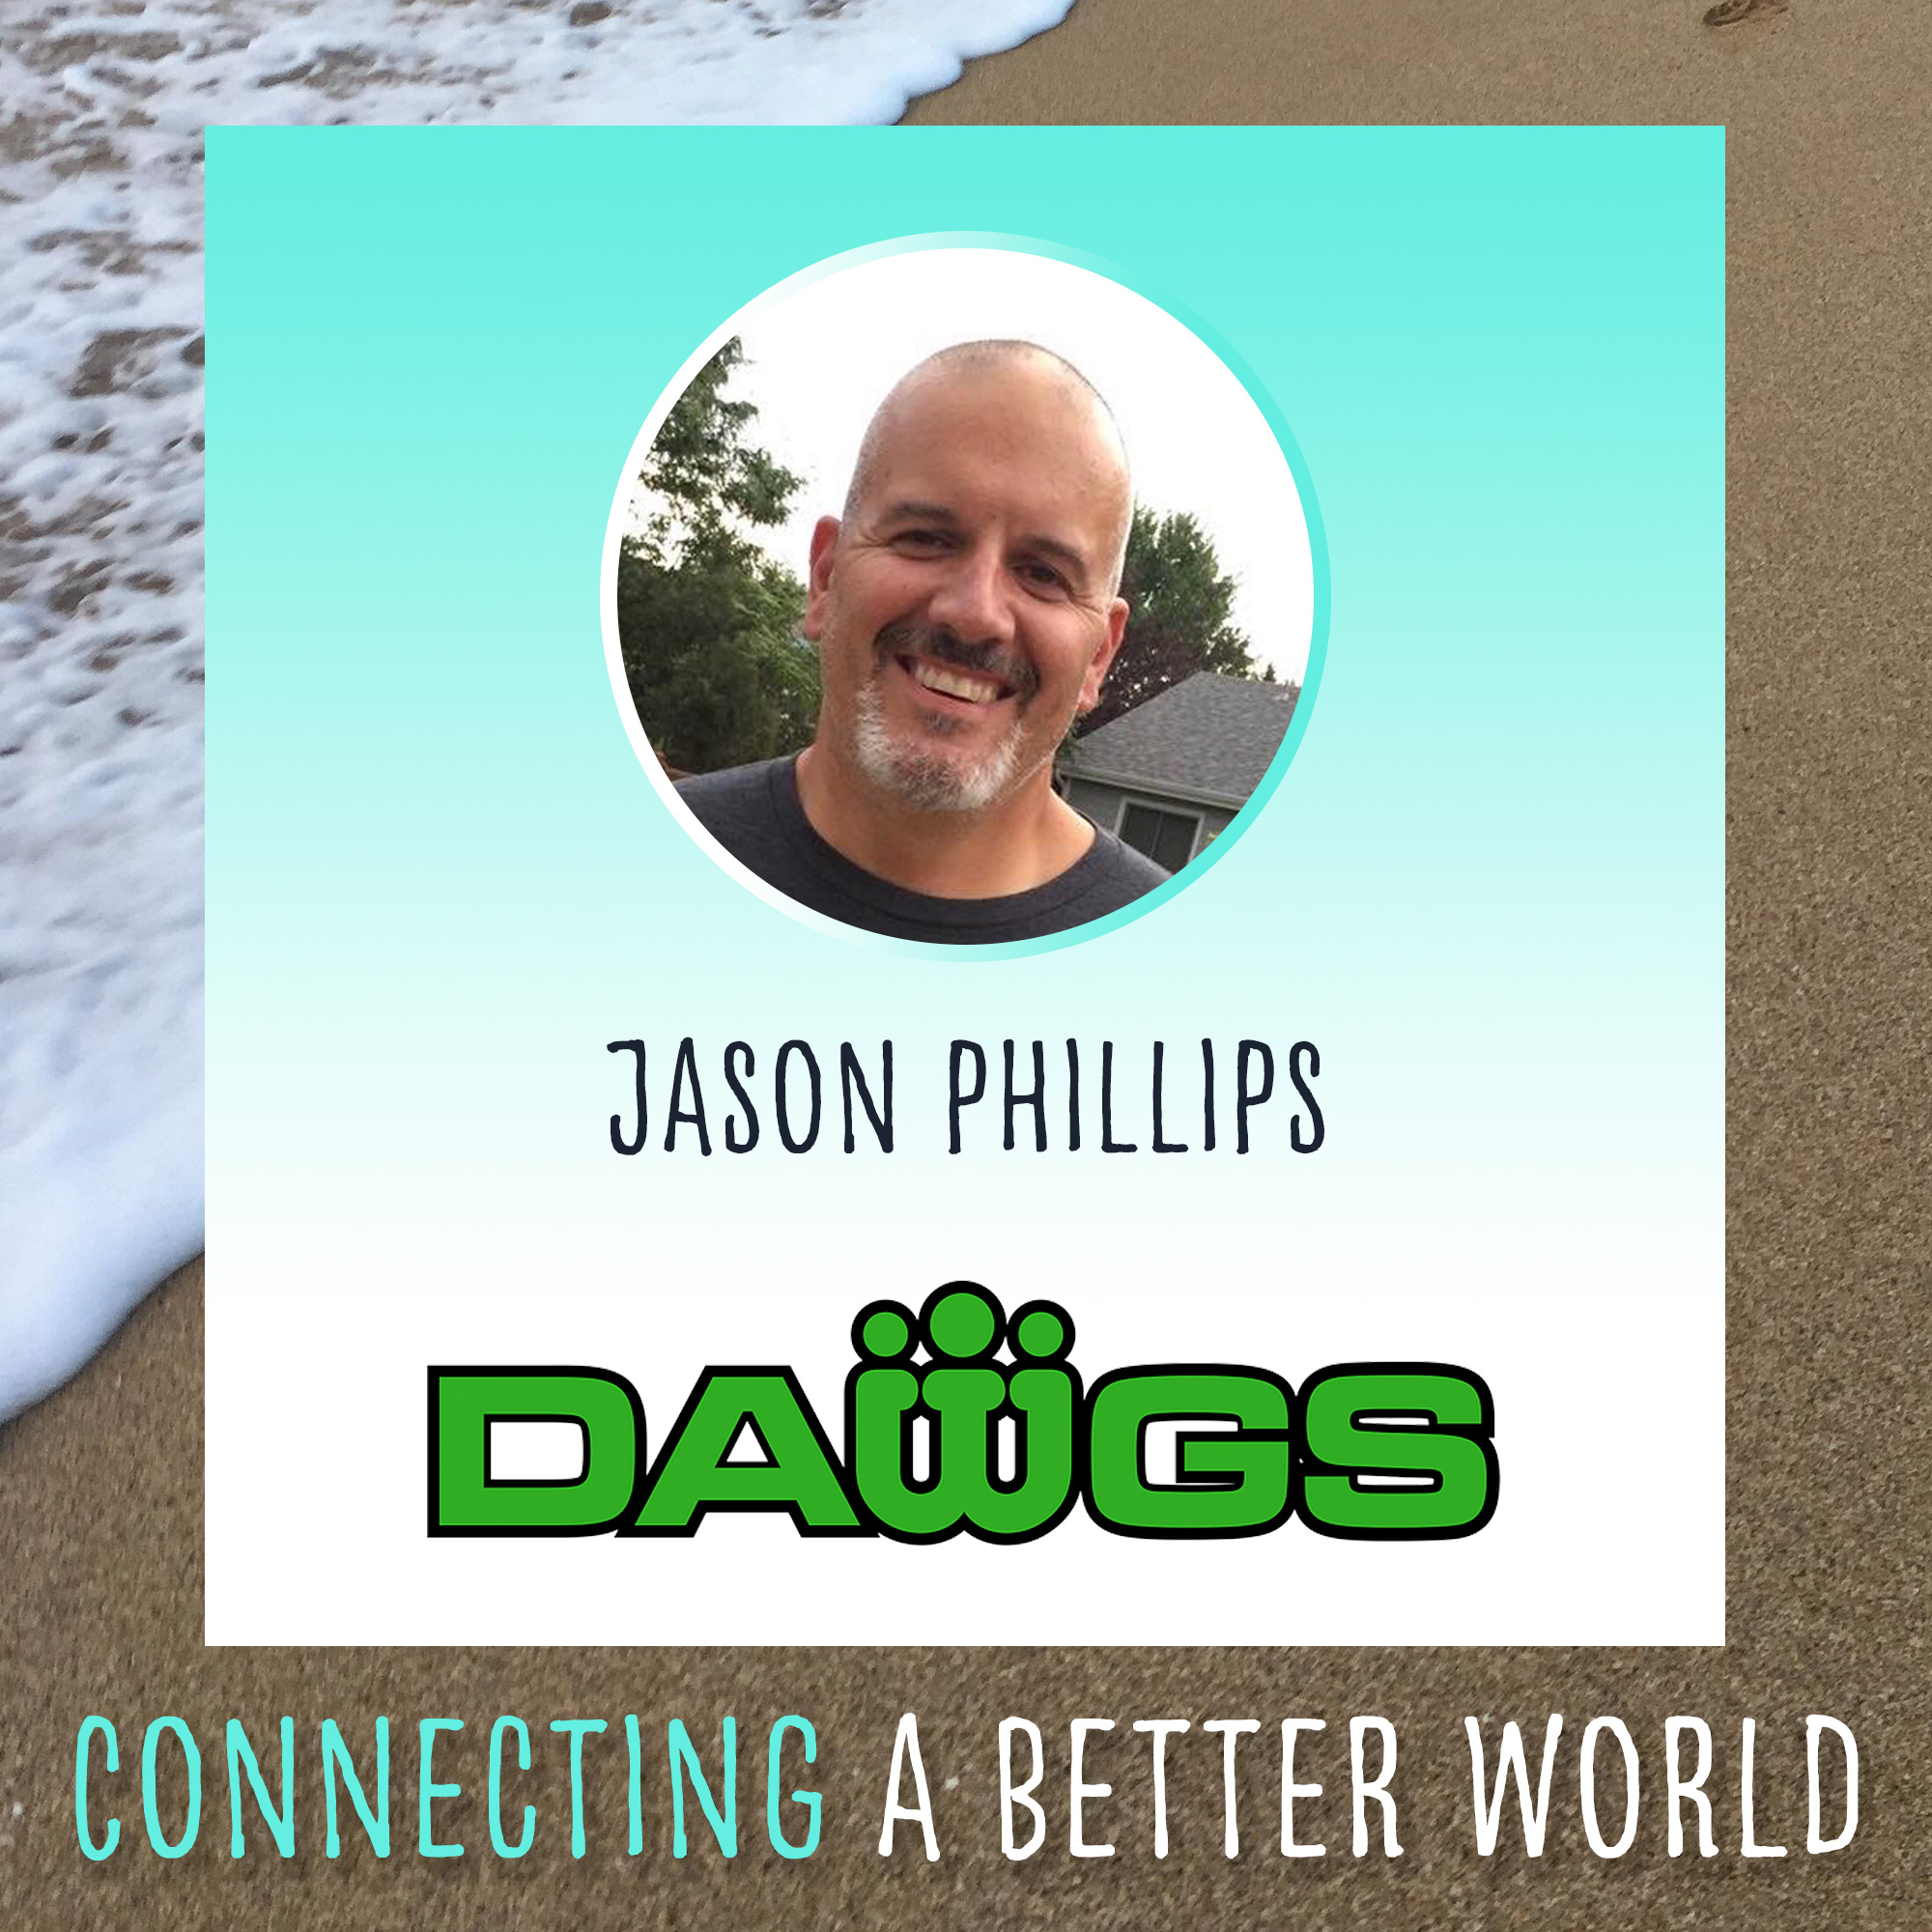 From Coaching Athletes to Creating Environments for Father Figures